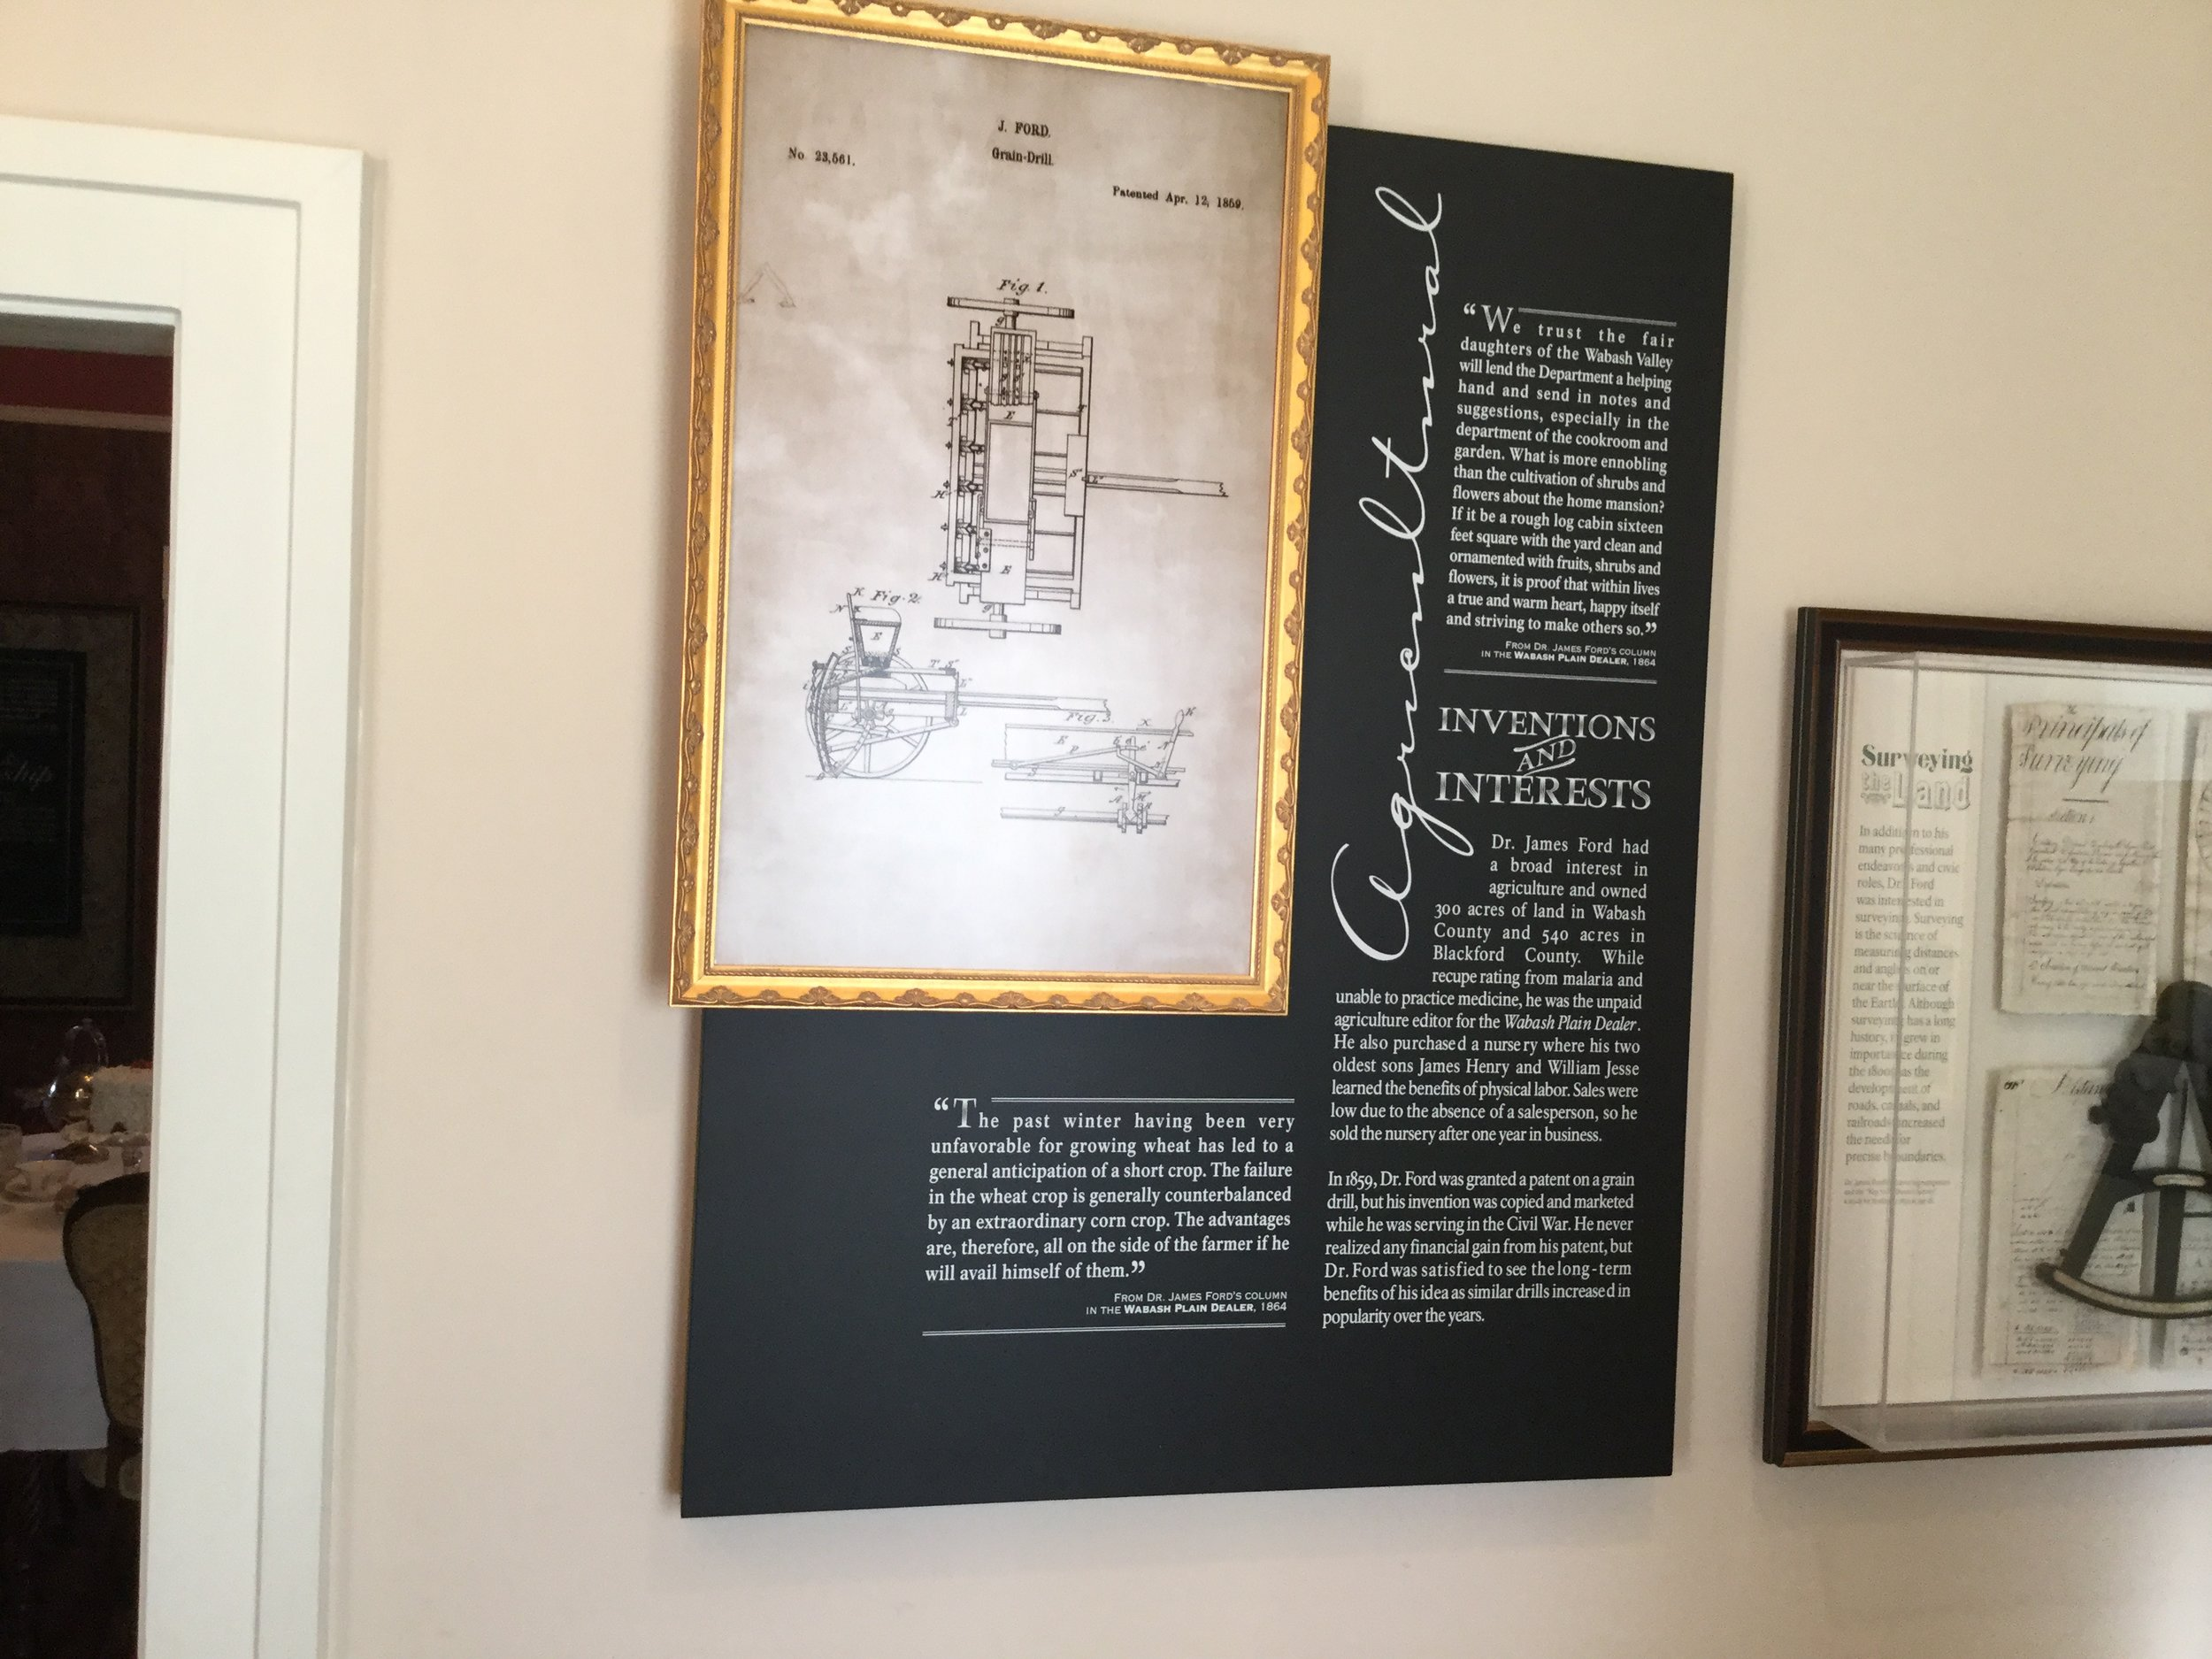 This placard in the Dr. James Ford Historic Home shows Dr. Ford's patent for his grain drill invention.